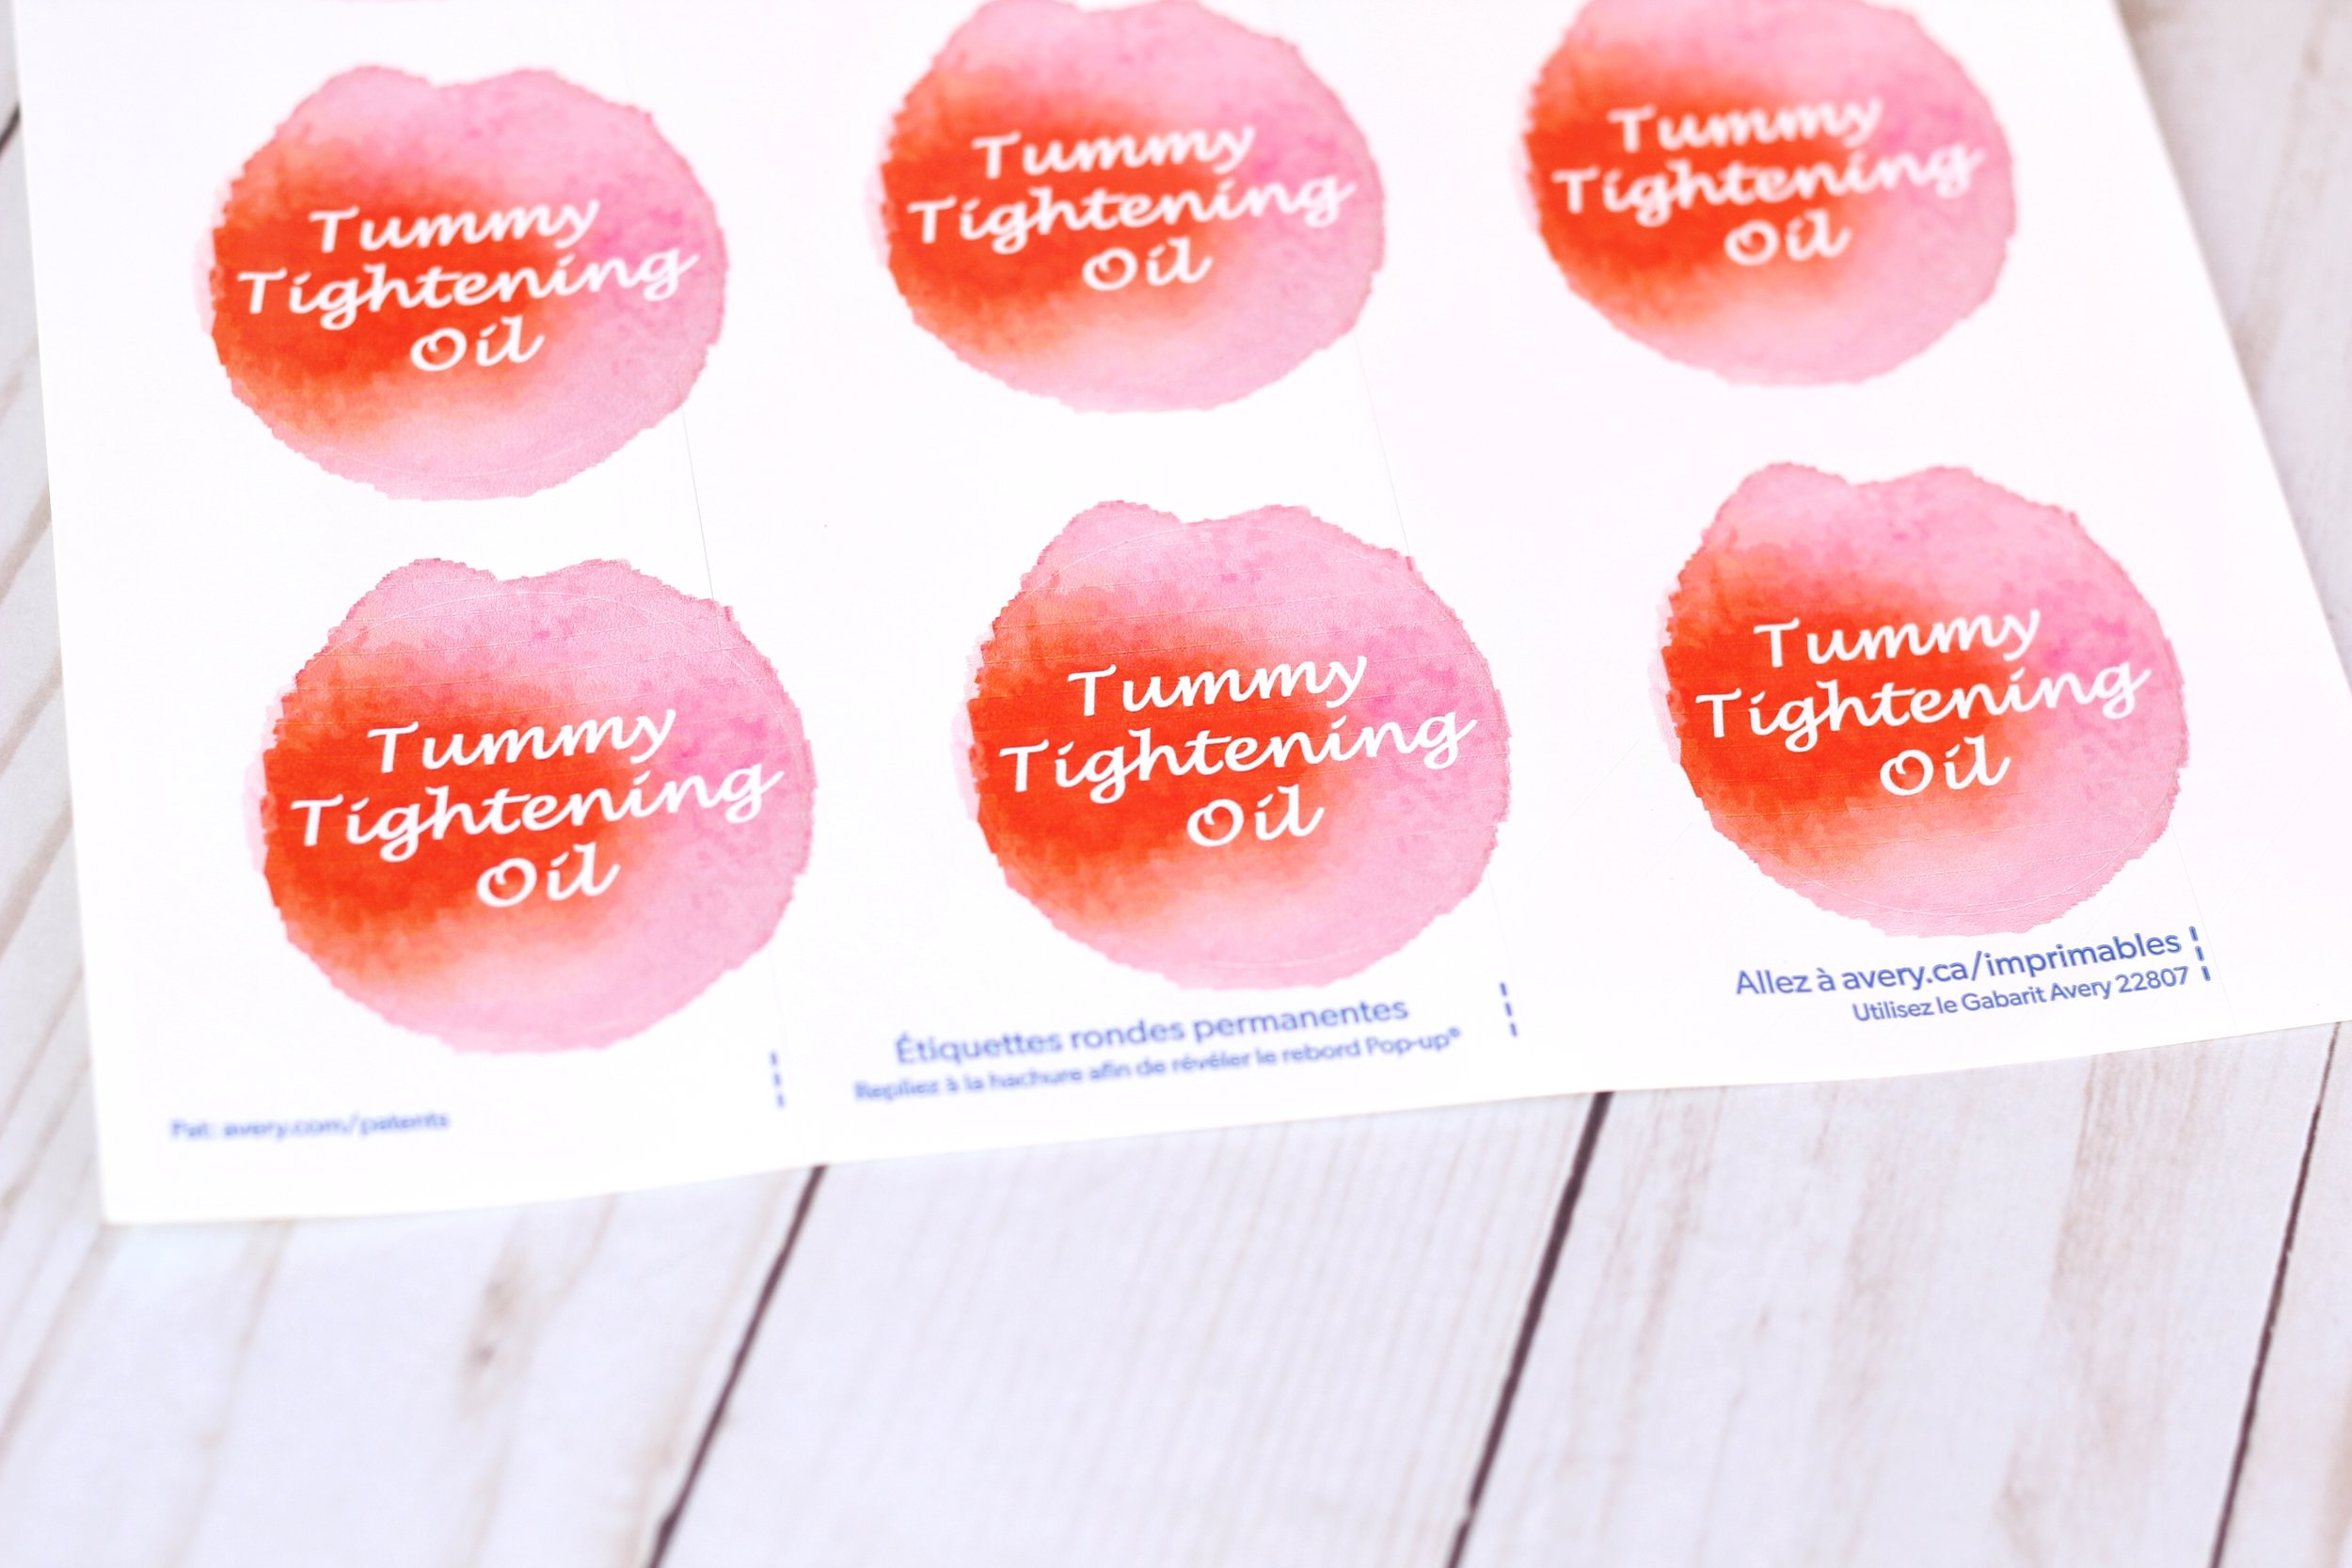 All natural list of ingredients for a DIY that helps to tighten your stomach and diminish appearance of scars and stretch marks. Free printable labels PDF included!